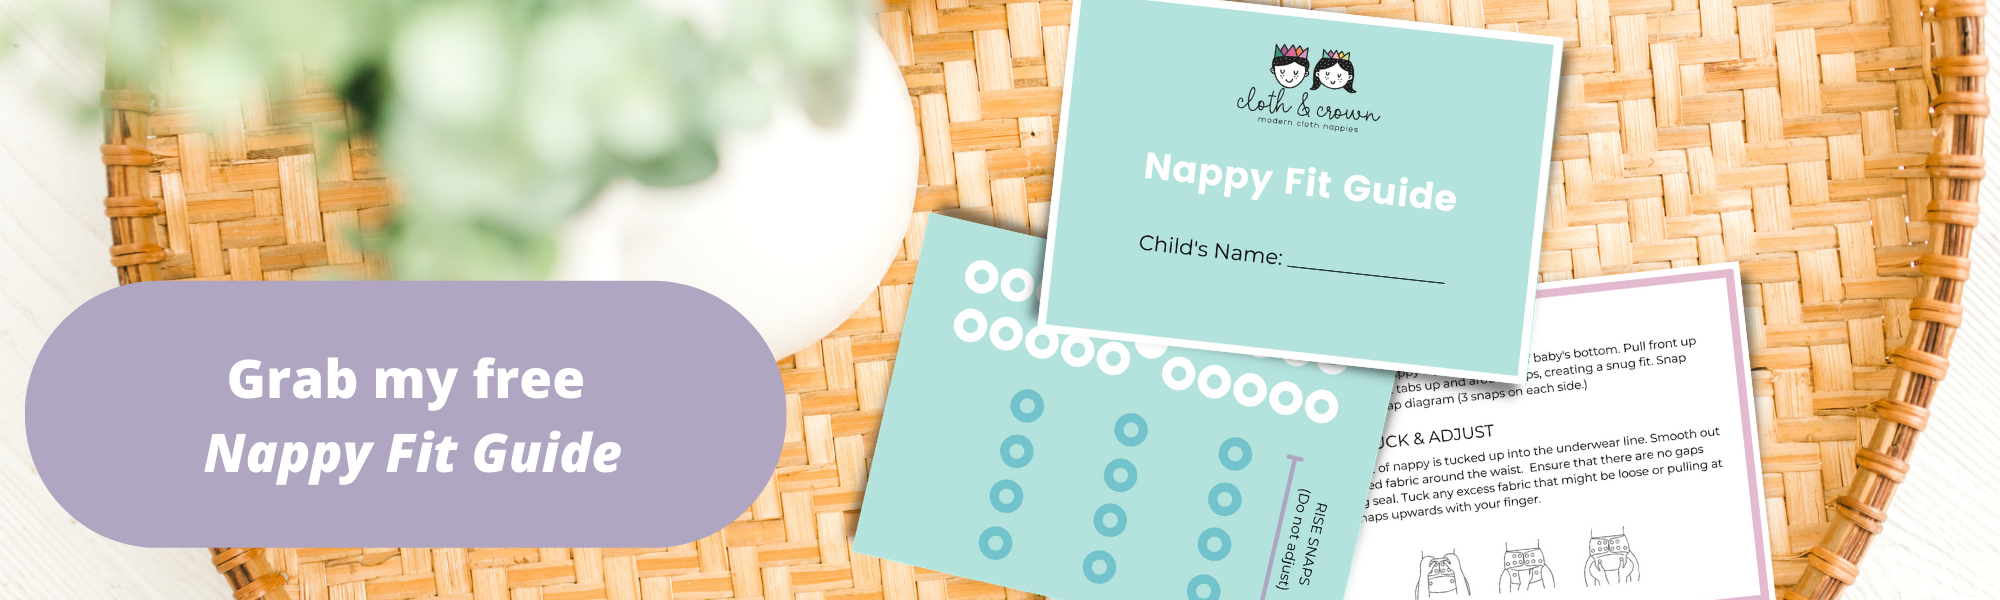 Nappy fit guide